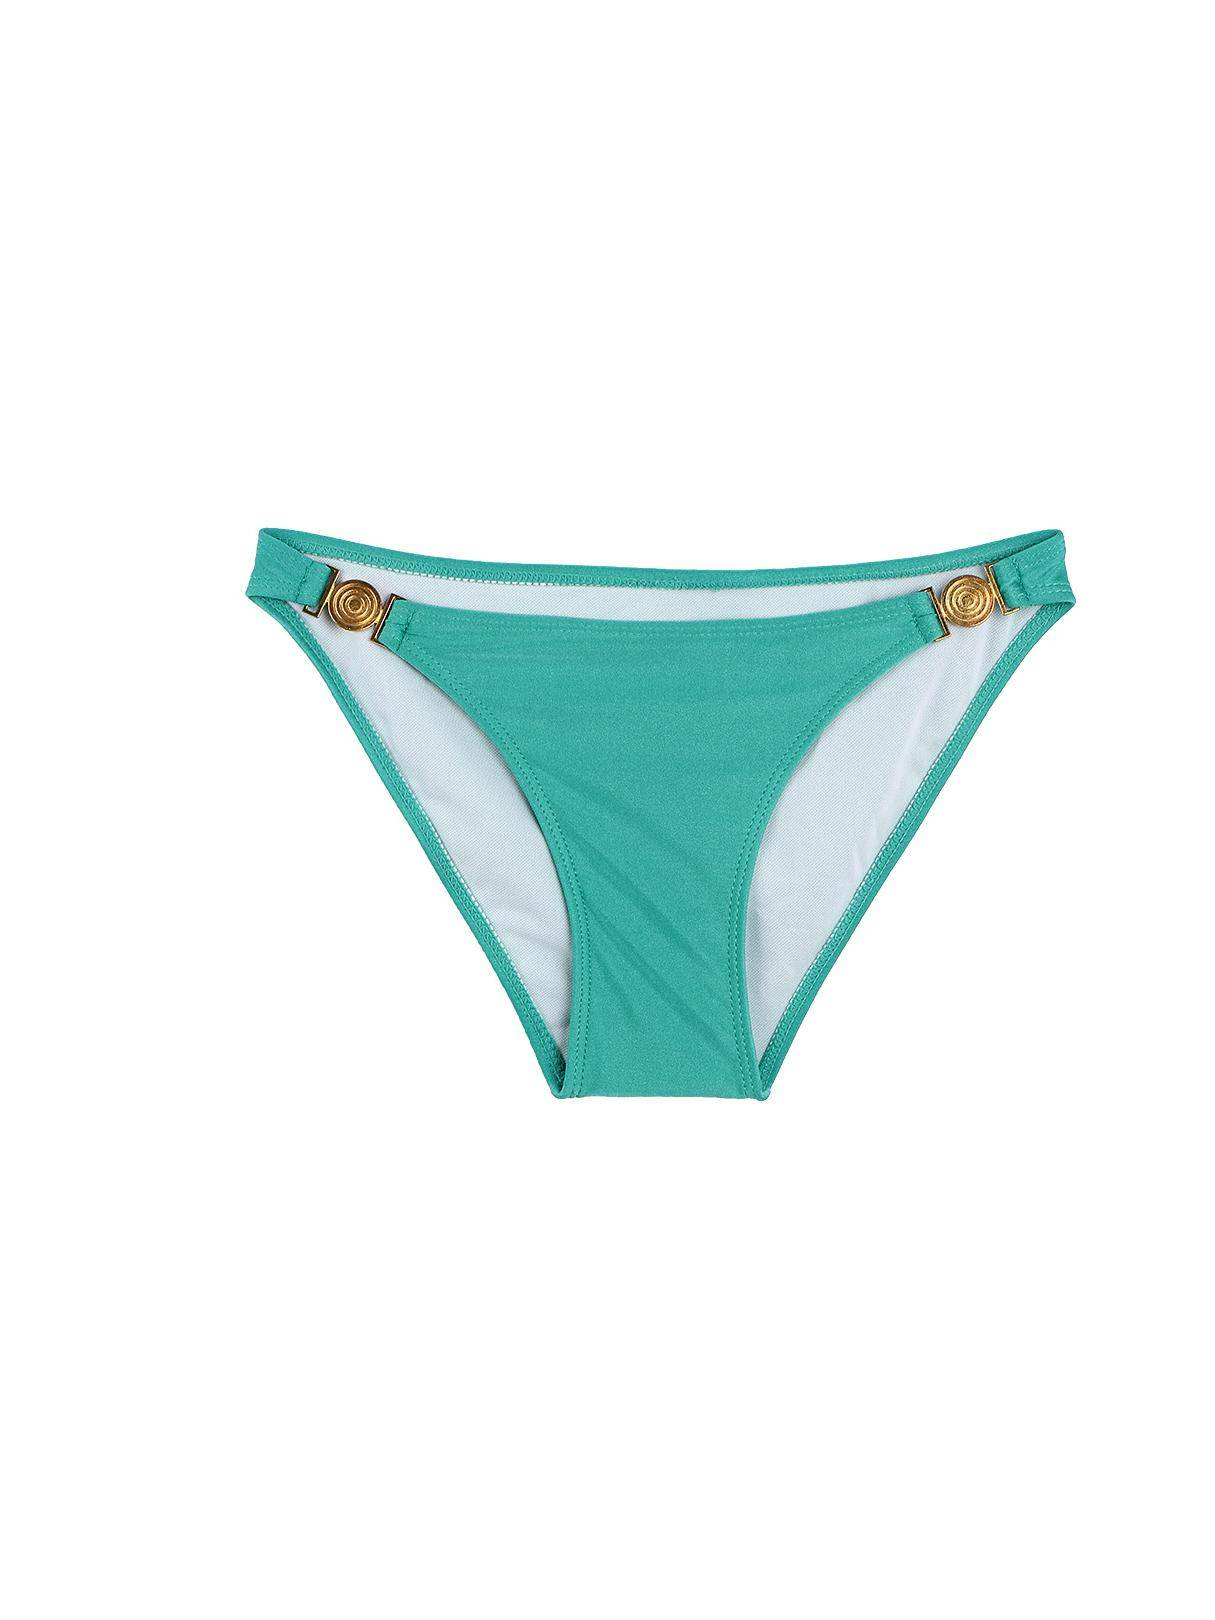 Tied Halter Knotted Bikini Set In Aquamarine от Yoins.com INT